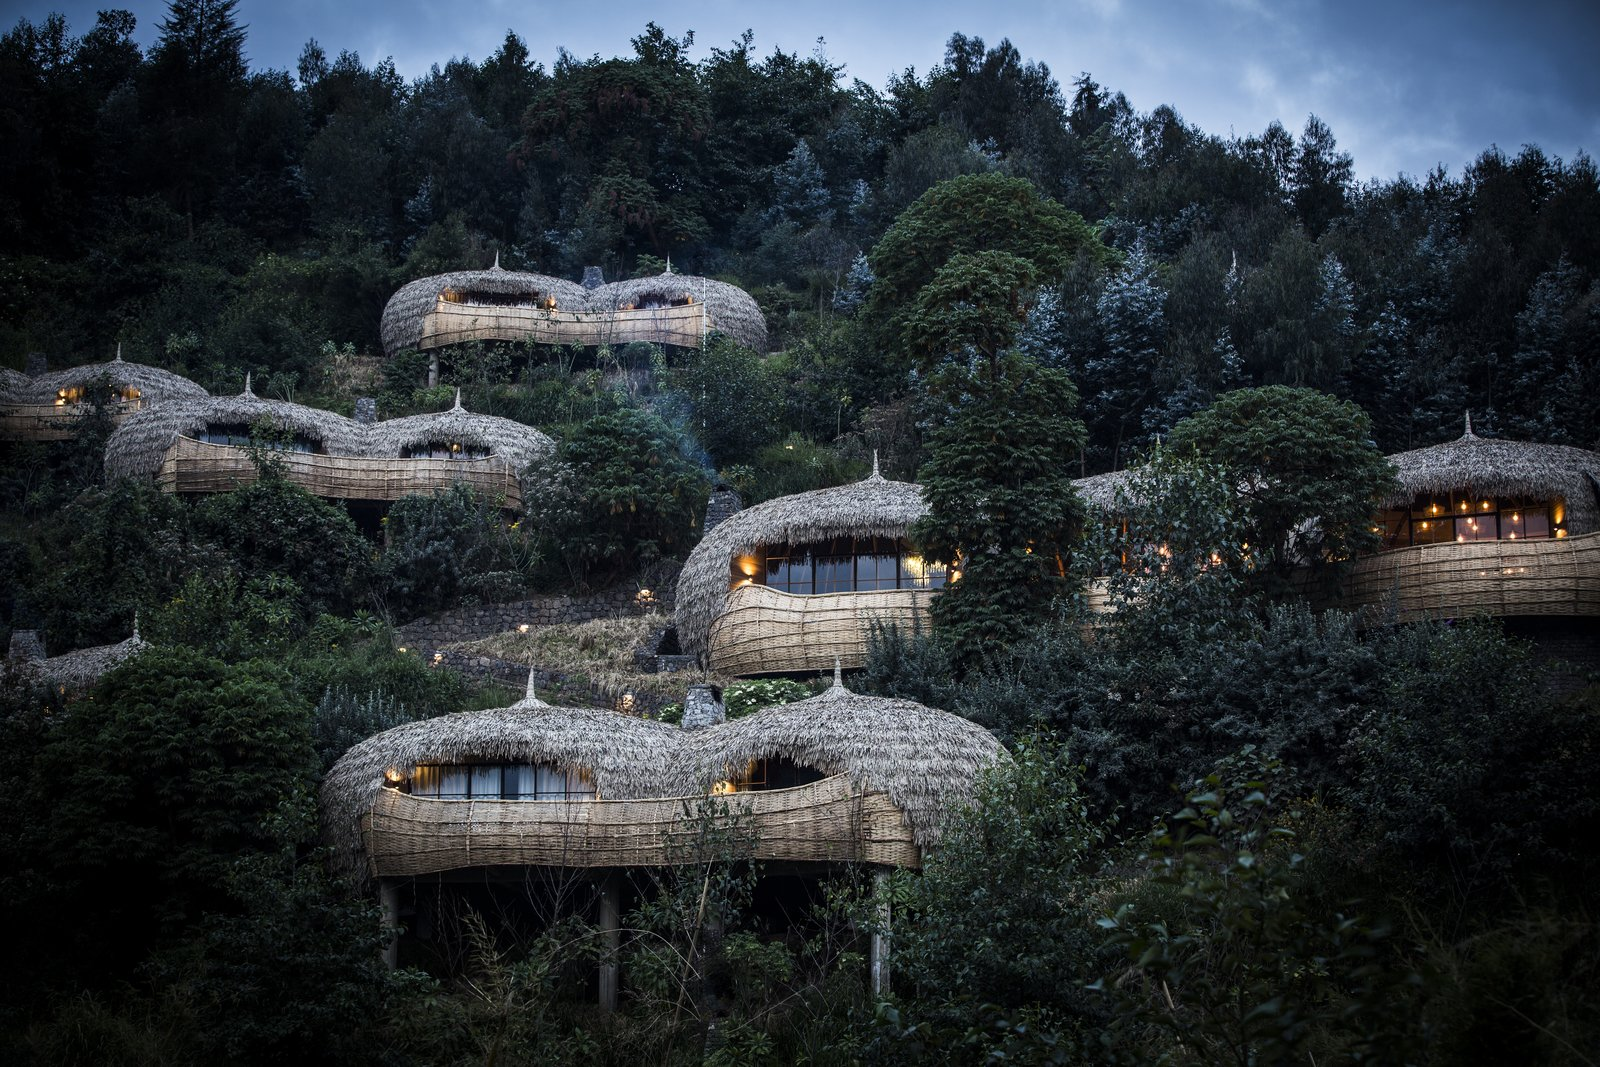 Photo 1 of 11 in Take an Eco-Escape to a Spherical Forest Villa in an Eroded Volcanic Cone in Rwanda